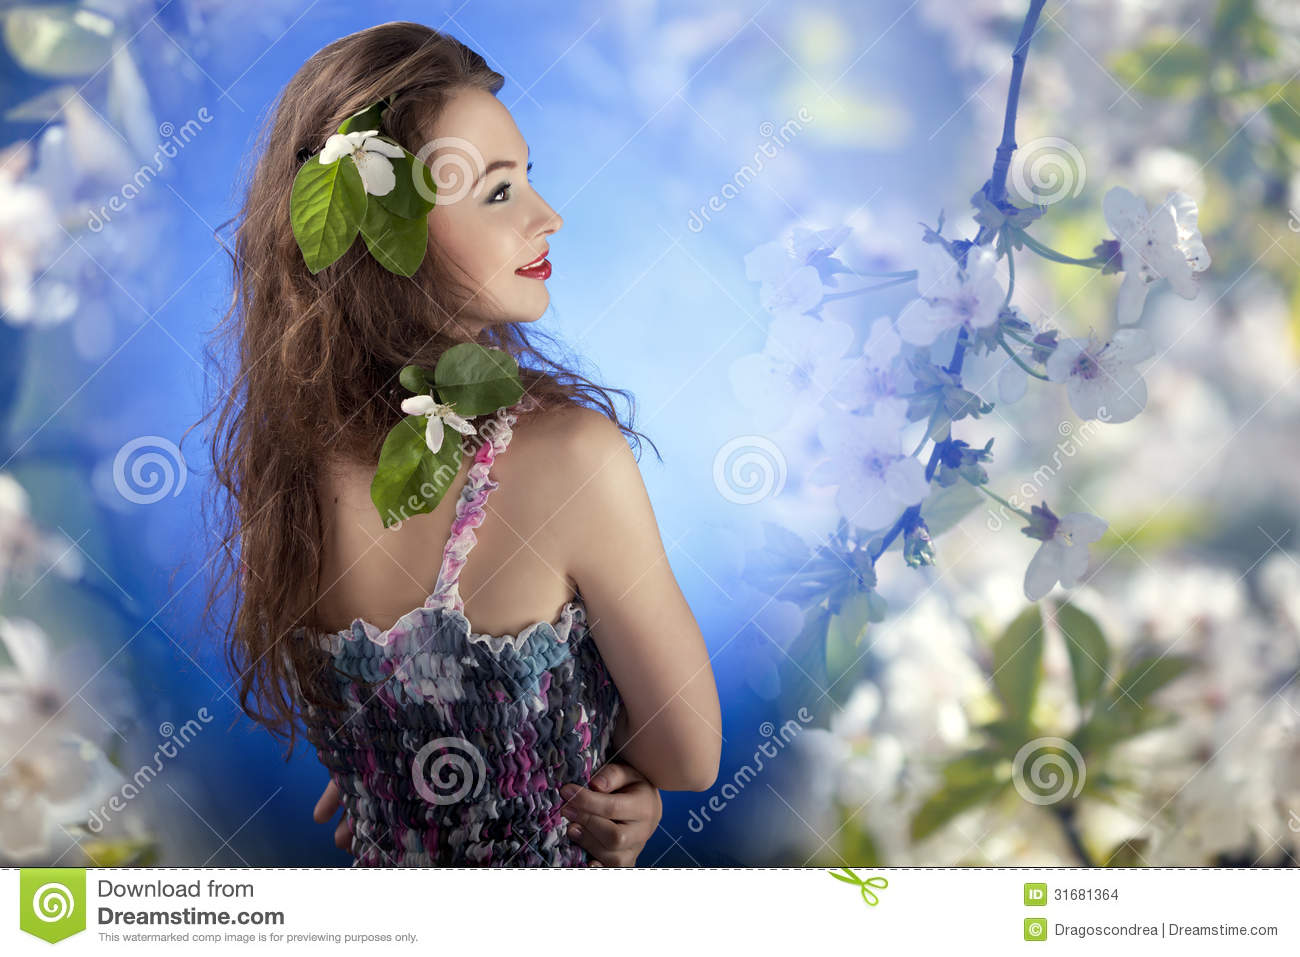 Beautiful Girl With Flowers In Hair On Flower Background Stock Photo